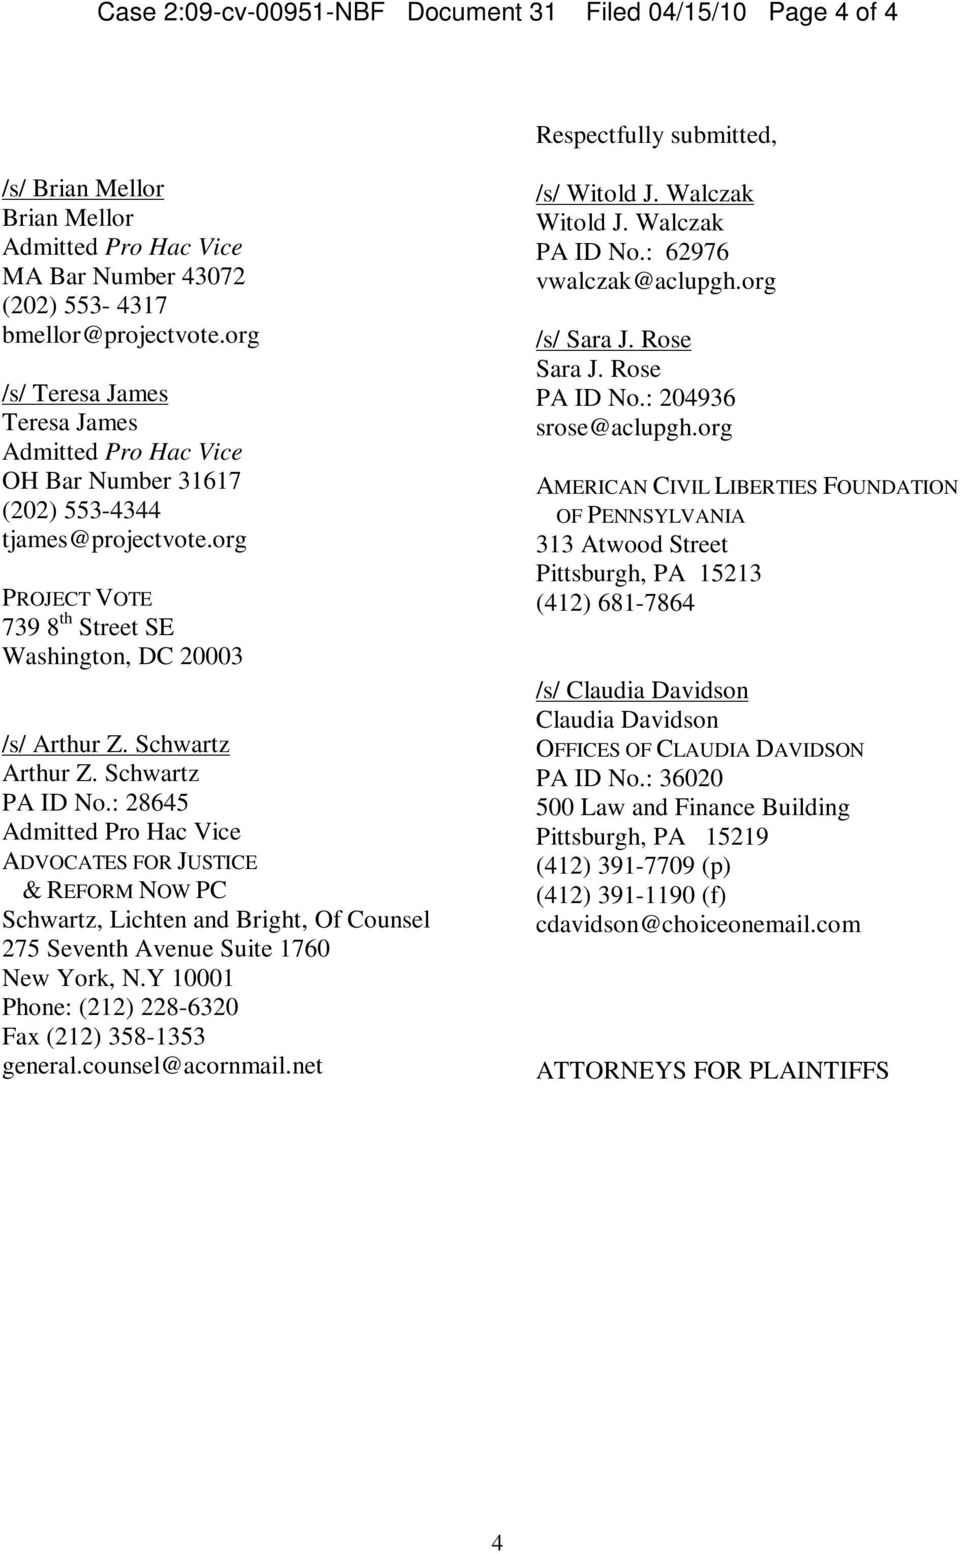 Schwartz PA ID No.: 28645 Admitted Pro Hac Vice ADVOCATES FOR JUSTICE & REFORM NOW PC Schwartz, Lichten and Bright, Of Counsel 275 Seventh Avenue Suite 1760 New York, N.